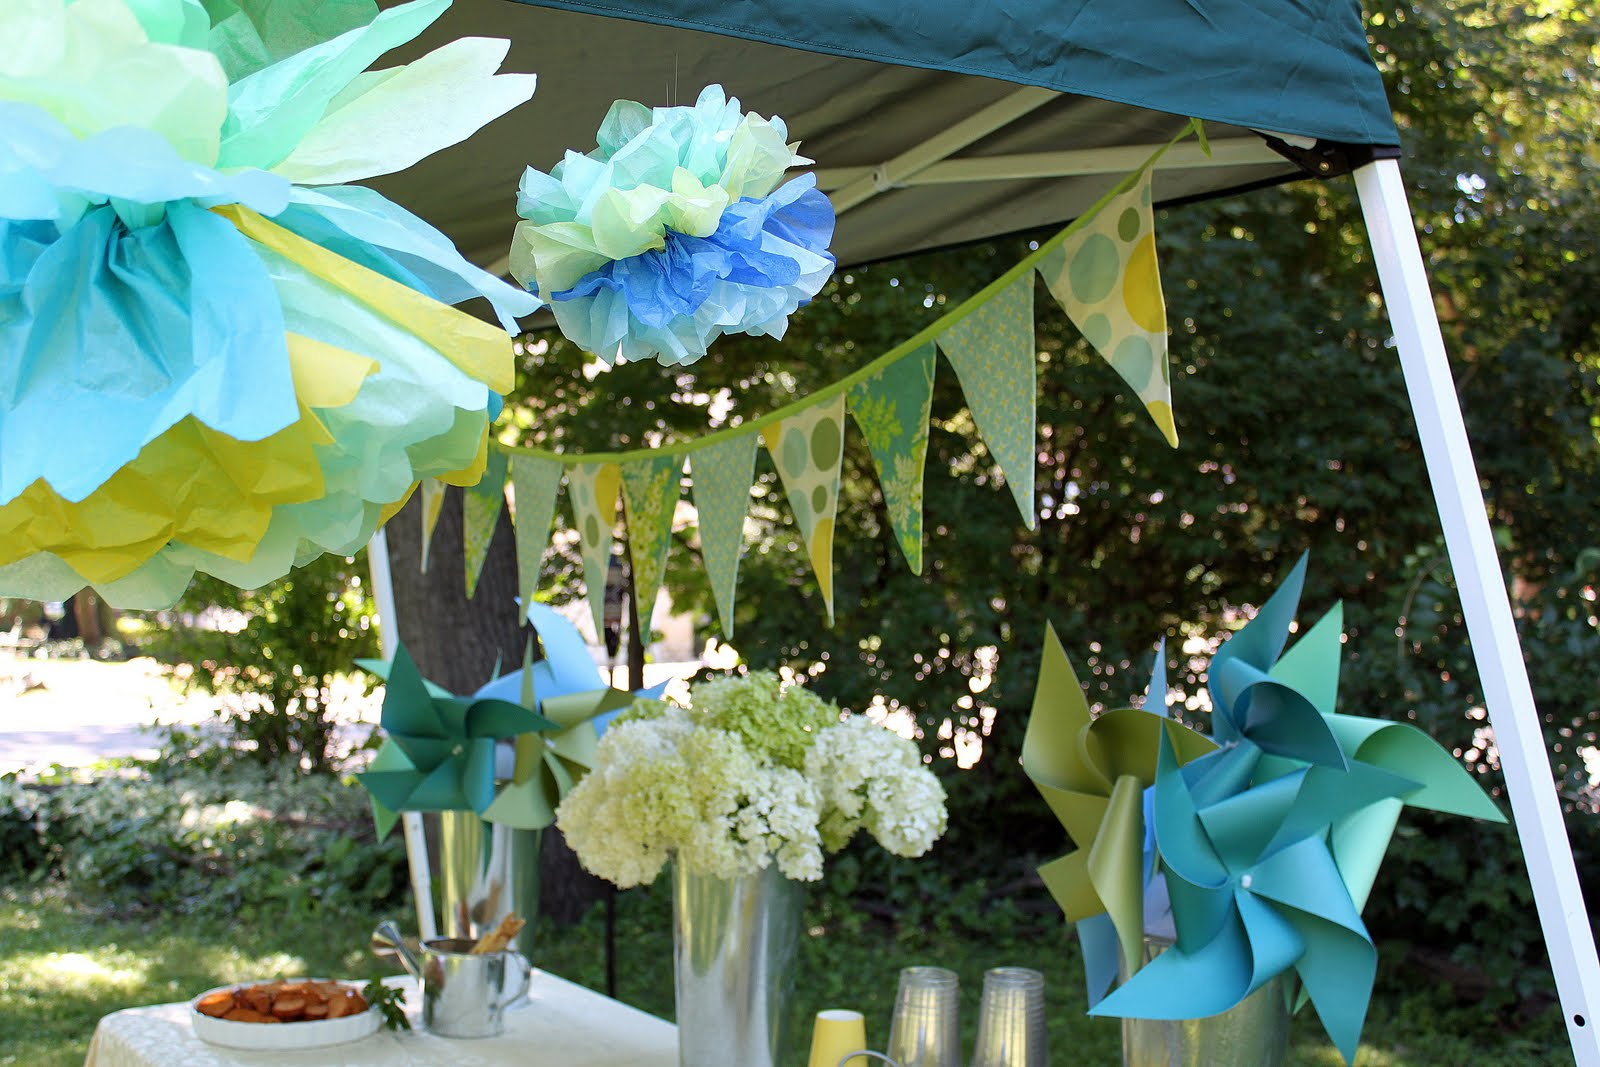 matilda's summer garden party } - the cottage mama